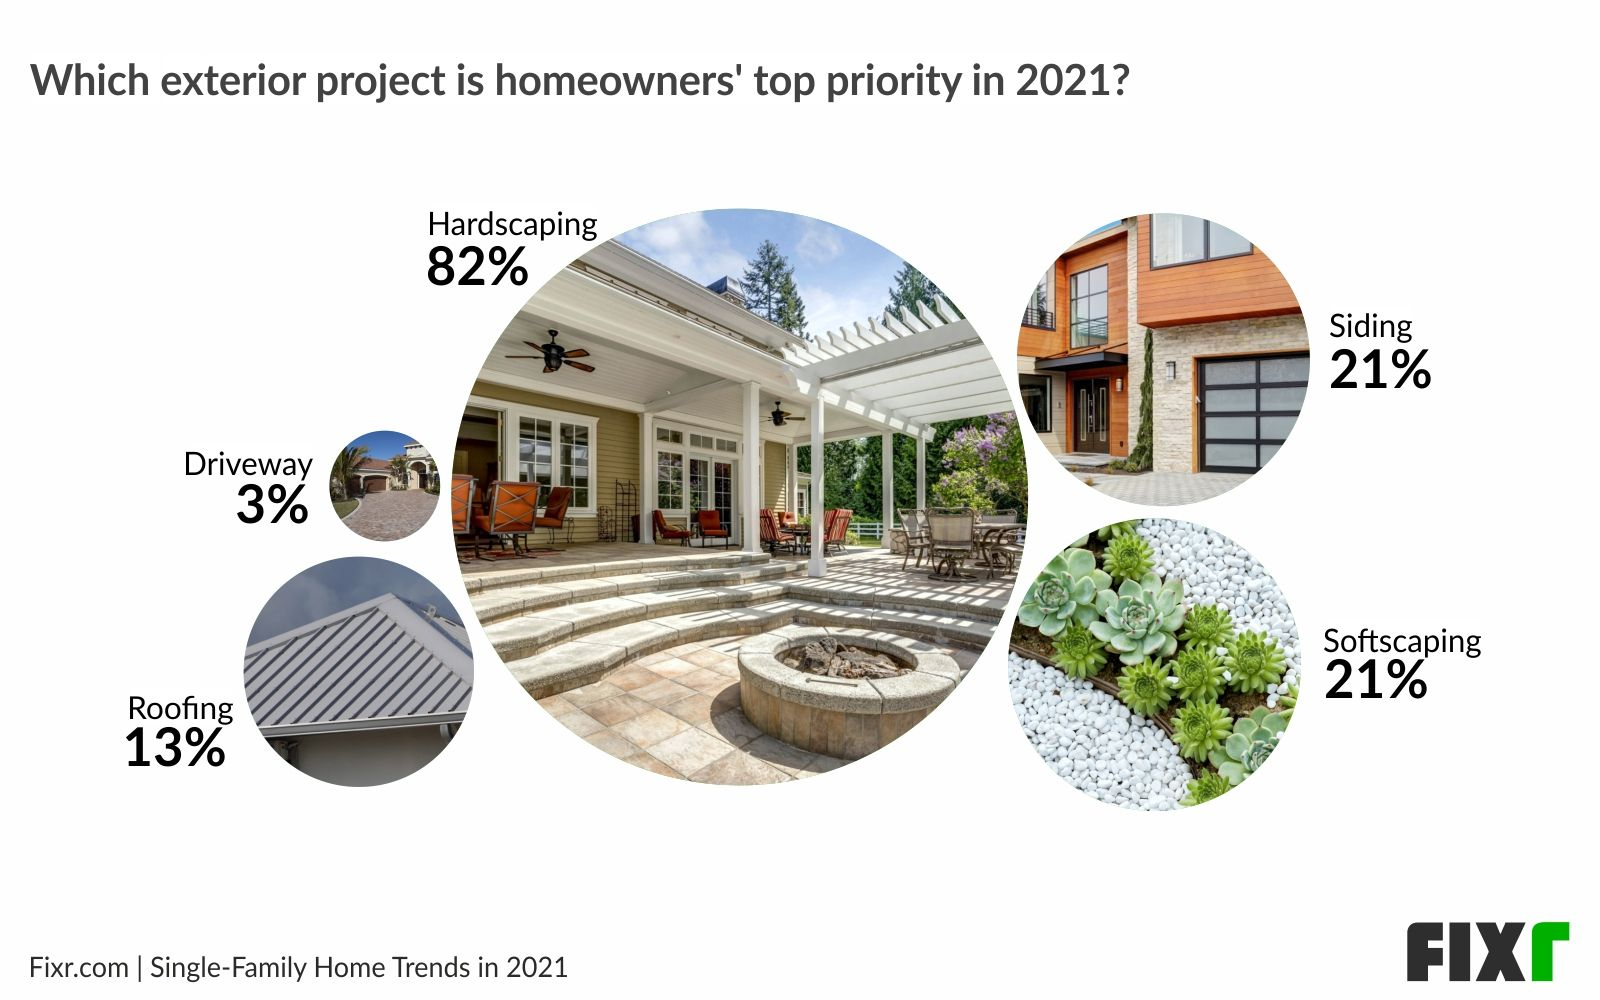 Home remodeling trends 2021 - Exterior projects